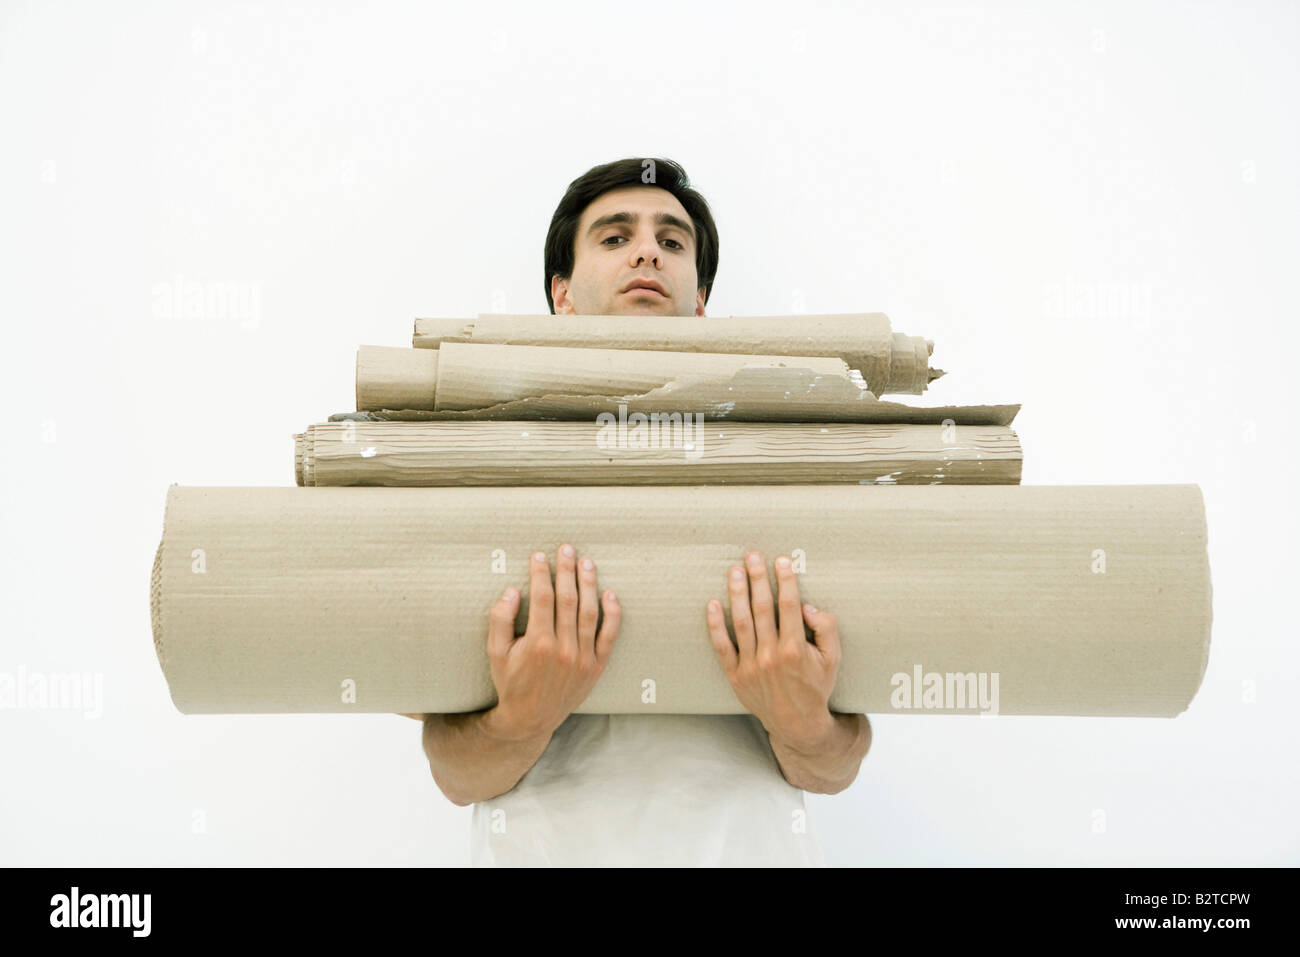 Man carrying large stack of corrugated cardboard, looking at camera - Stock Image